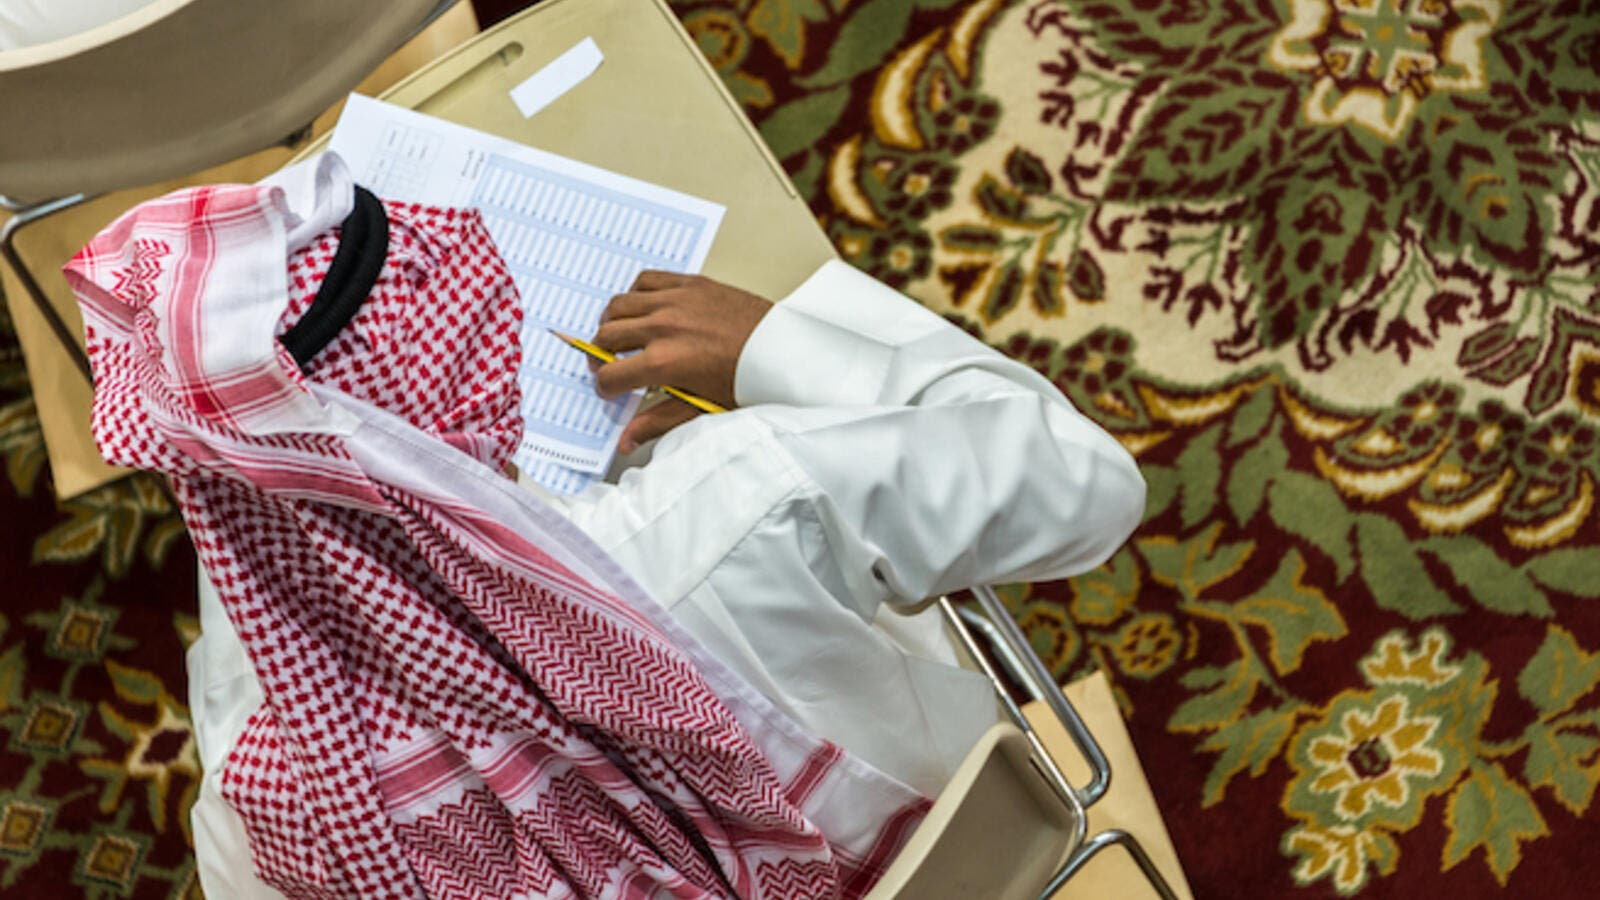 Al-Saraj said that Saudi Vision 2030 was motivating students, encouraging them to create their own businesses. (Shutterstock)